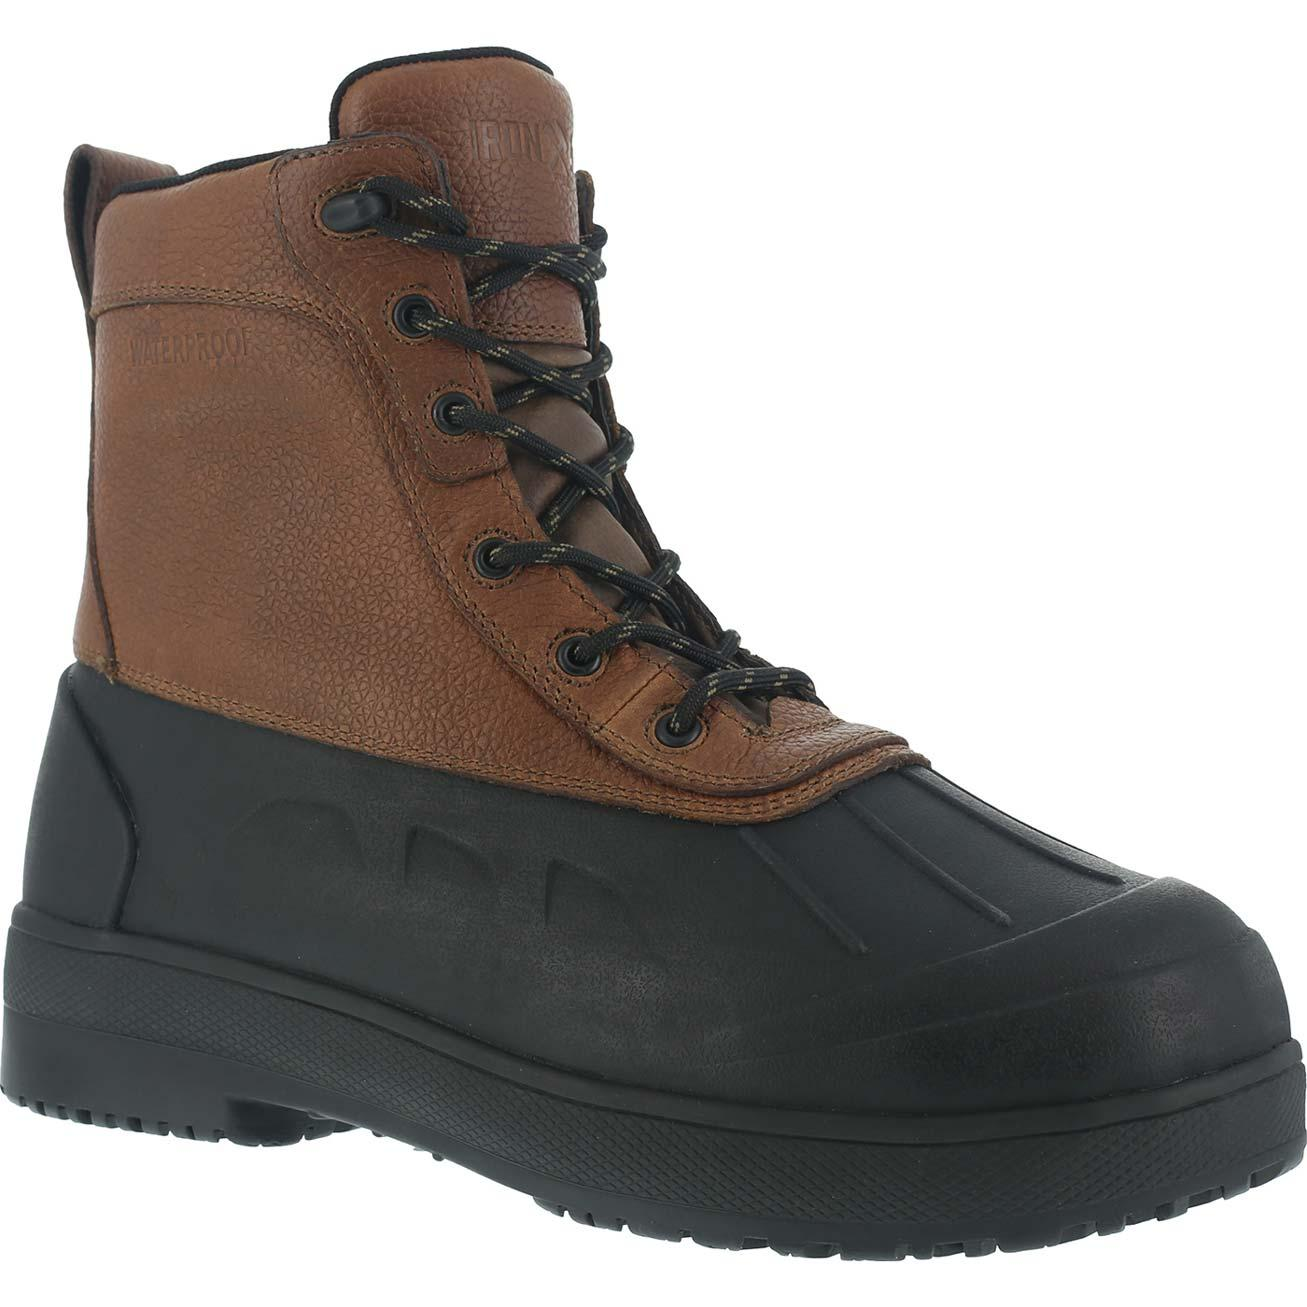 89ef2ef8391122 Iron Age Compound Men s Composite Toe Waterproof Work BootIron Age Compound Men s  Composite Toe Waterproof Work Boot